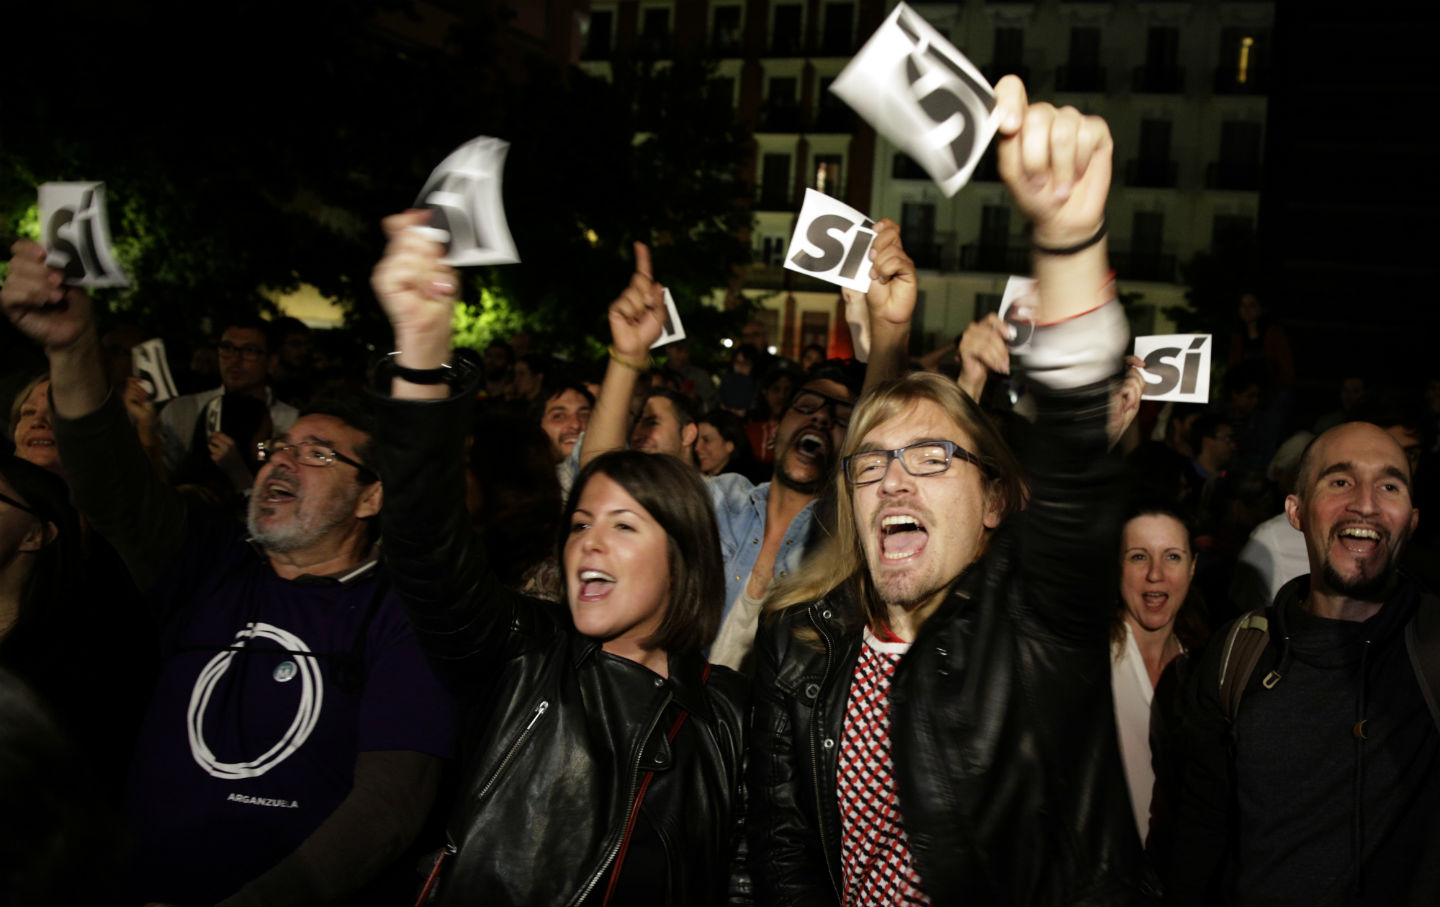 Podemos-supporters